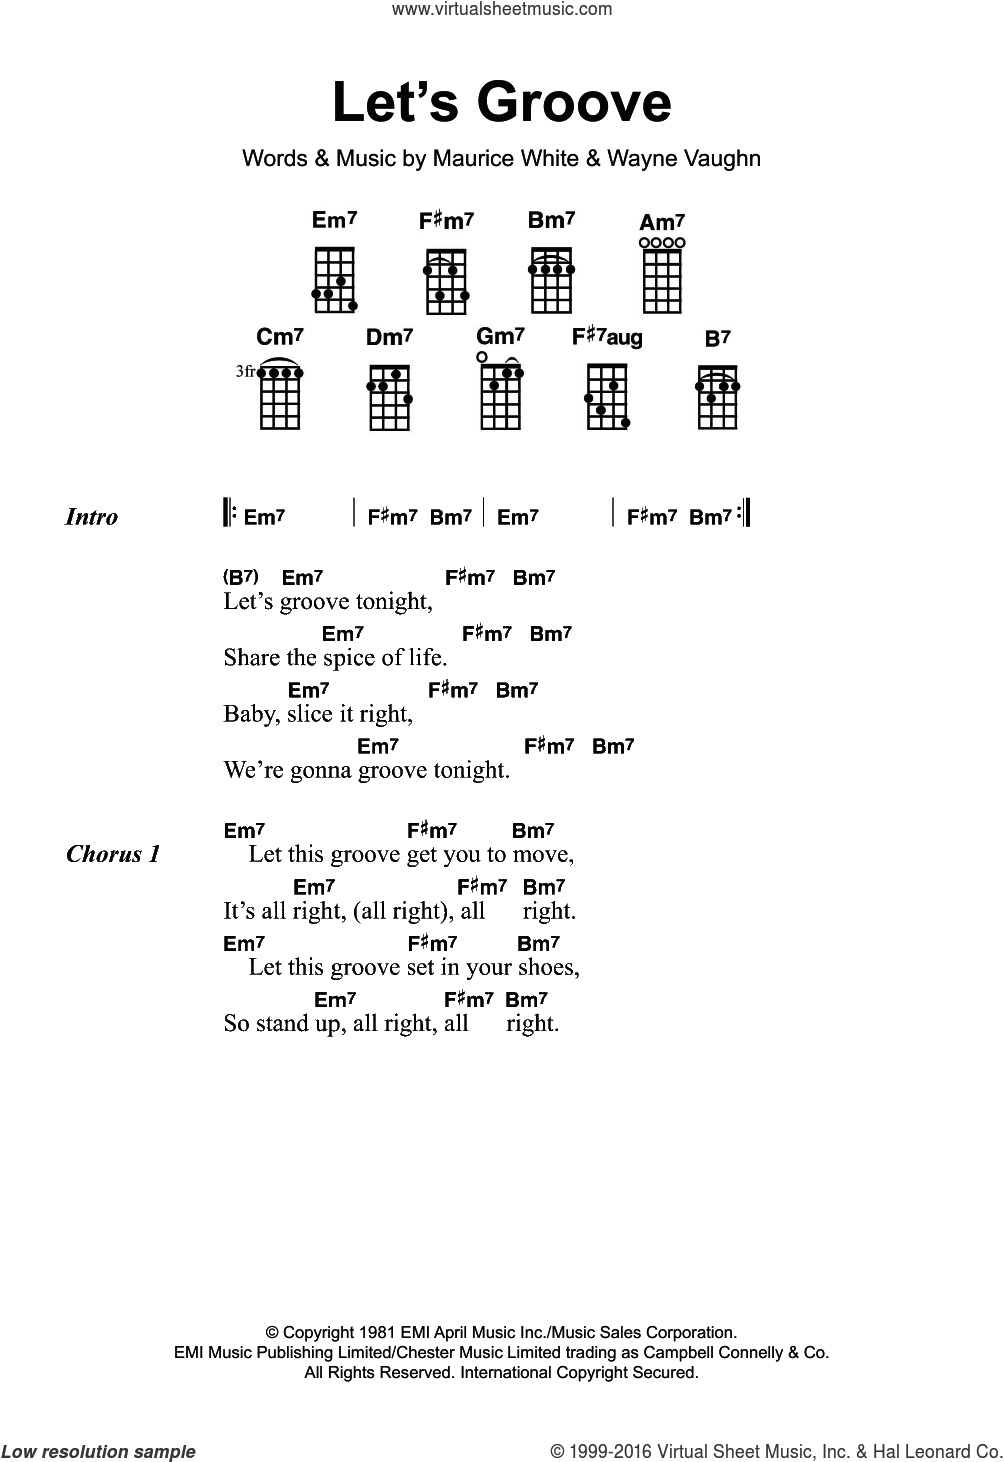 Let's Groove sheet music for ukulele by Maurice White